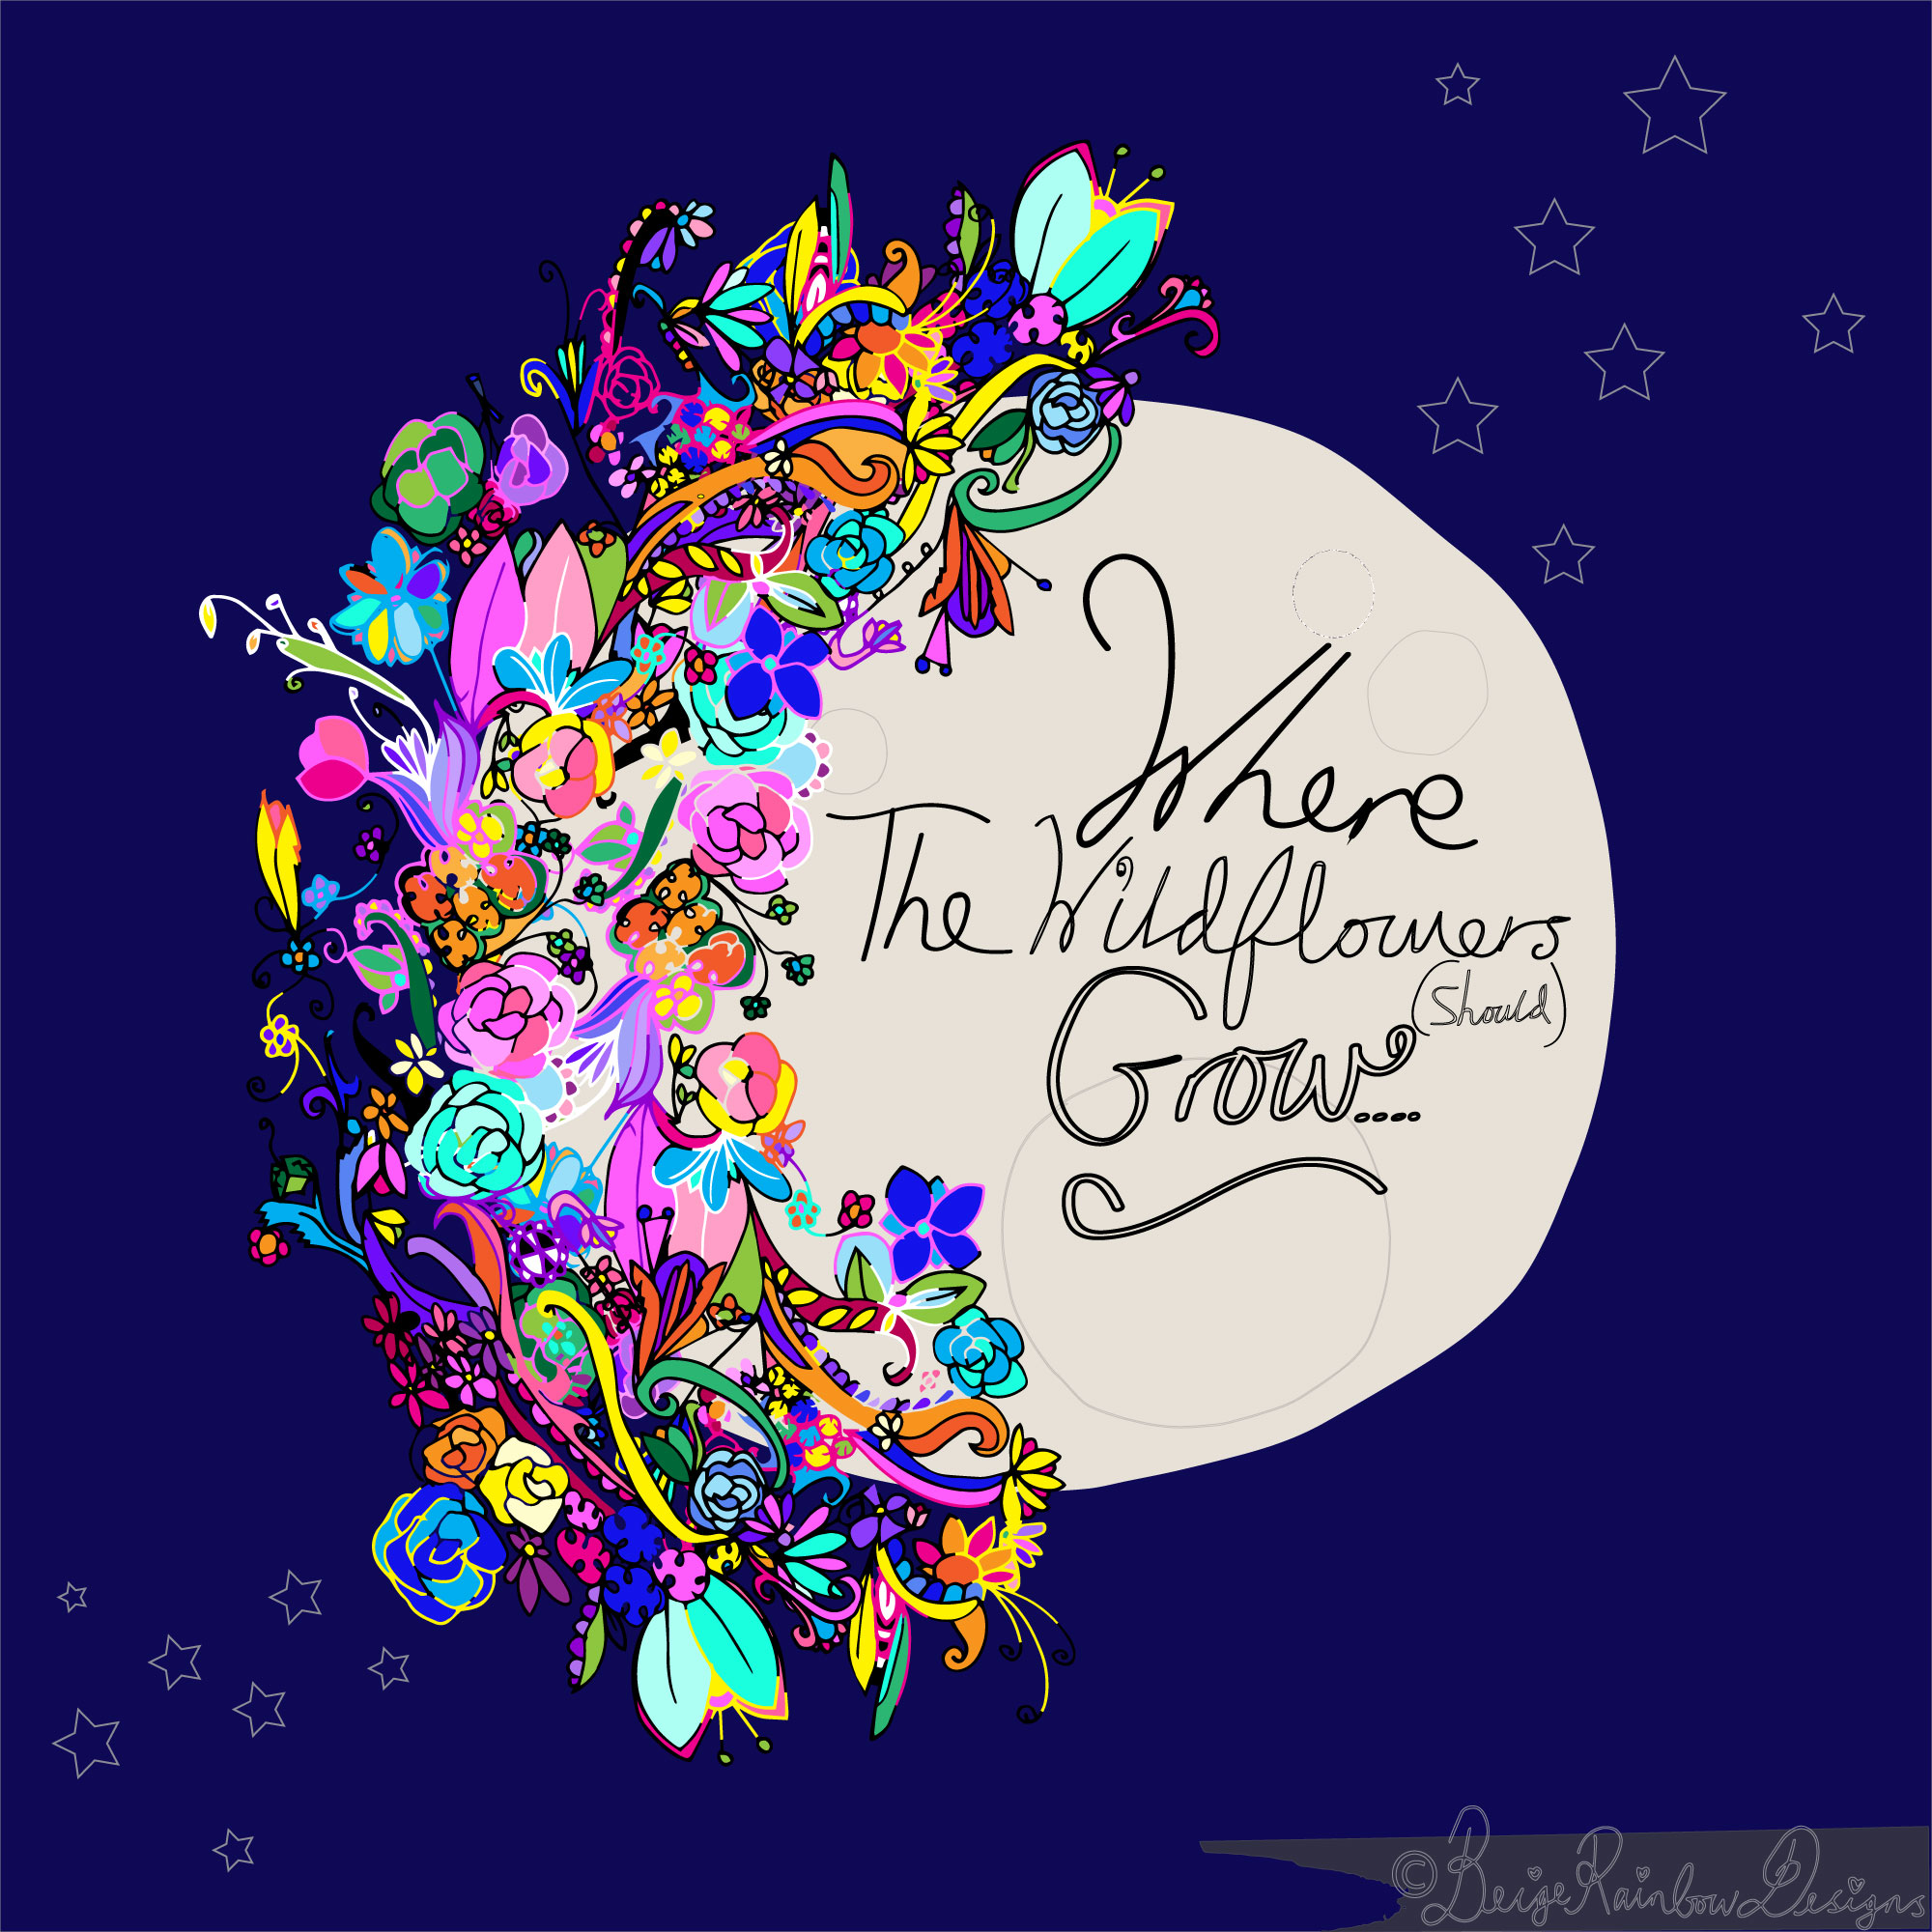 Where The Wildflowers (should) Grow - The Moon